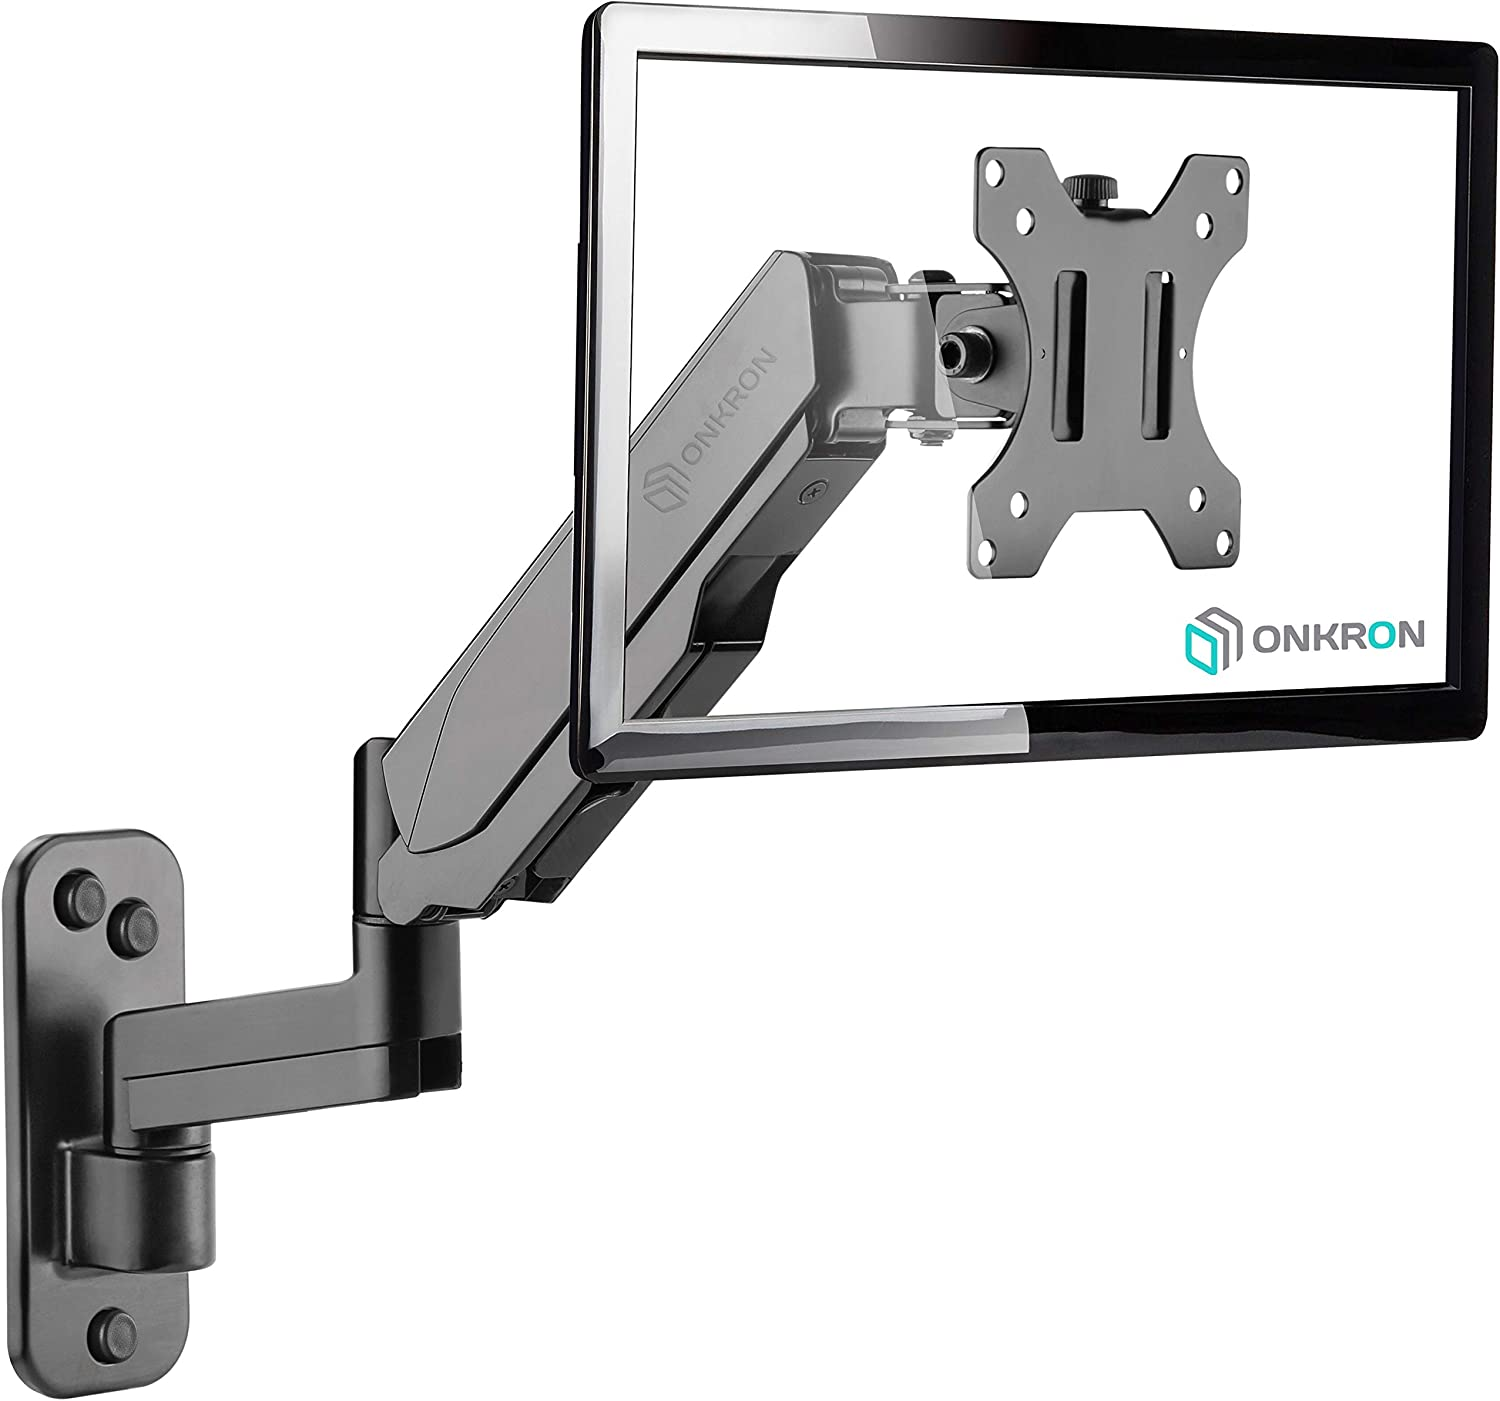 "ONKRON TV Monitor Wall Mount Bracket for 13"" – 32-Inch Screens Full Motion with Gas Spring Black G150"